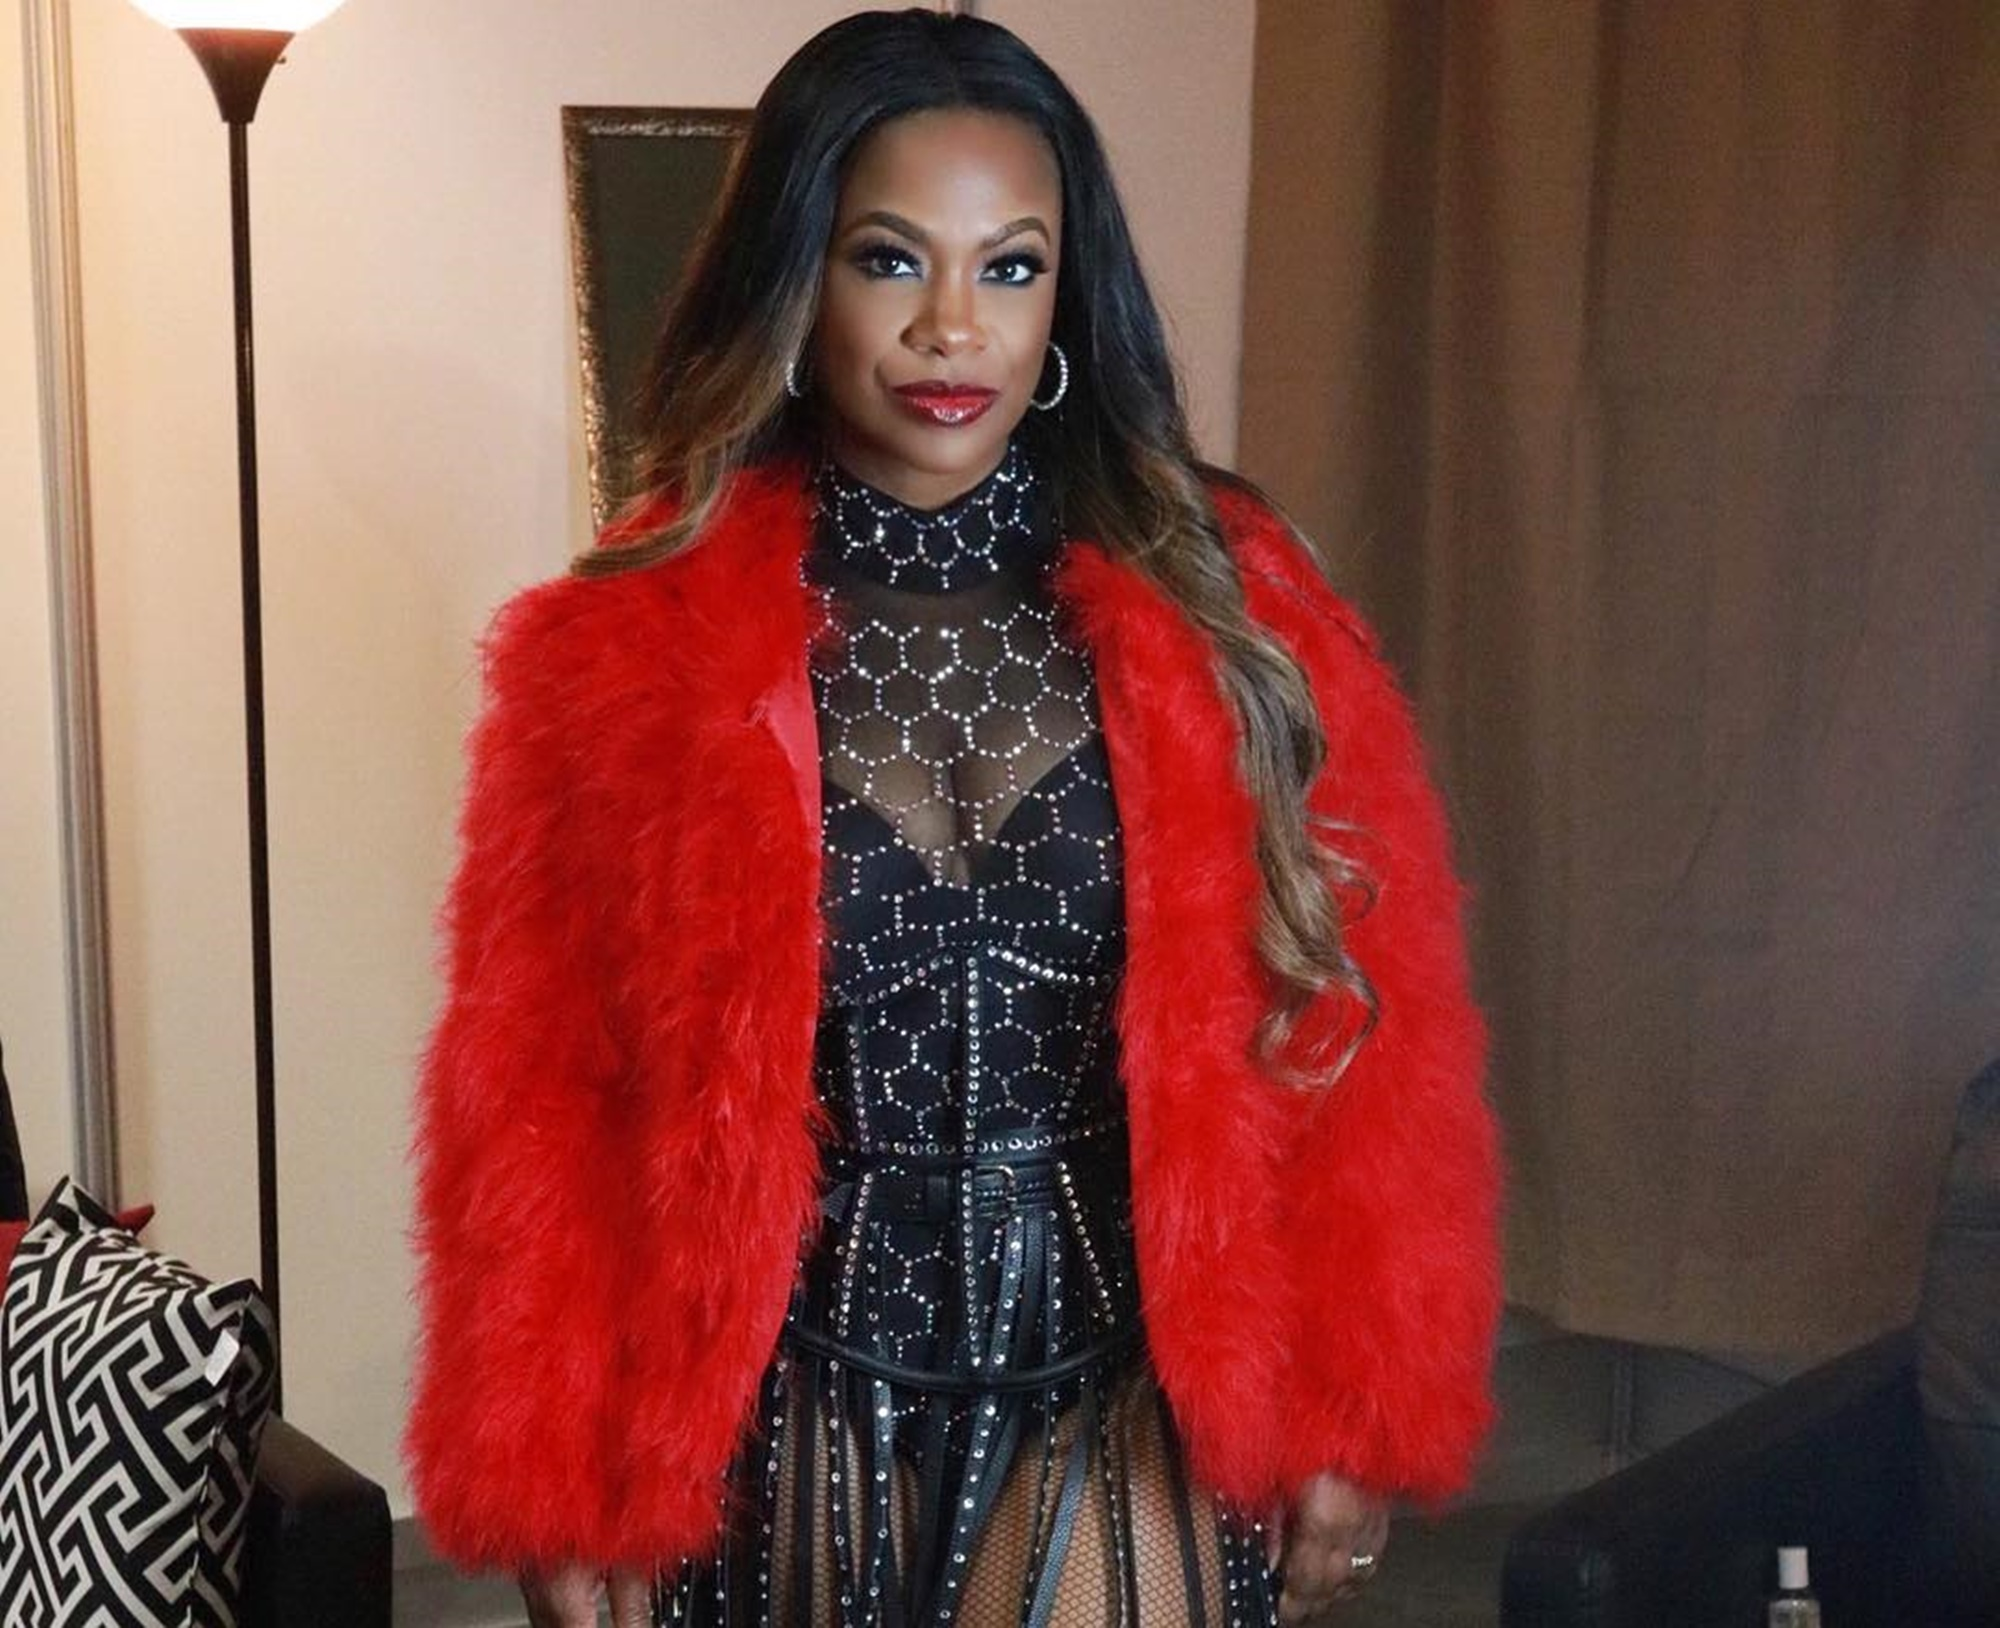 kandi-burruss-defends-tamar-braxton-for-not-mourning-the-death-of-her-niece-lauren-braxton-publicly-read-the-powerful-message